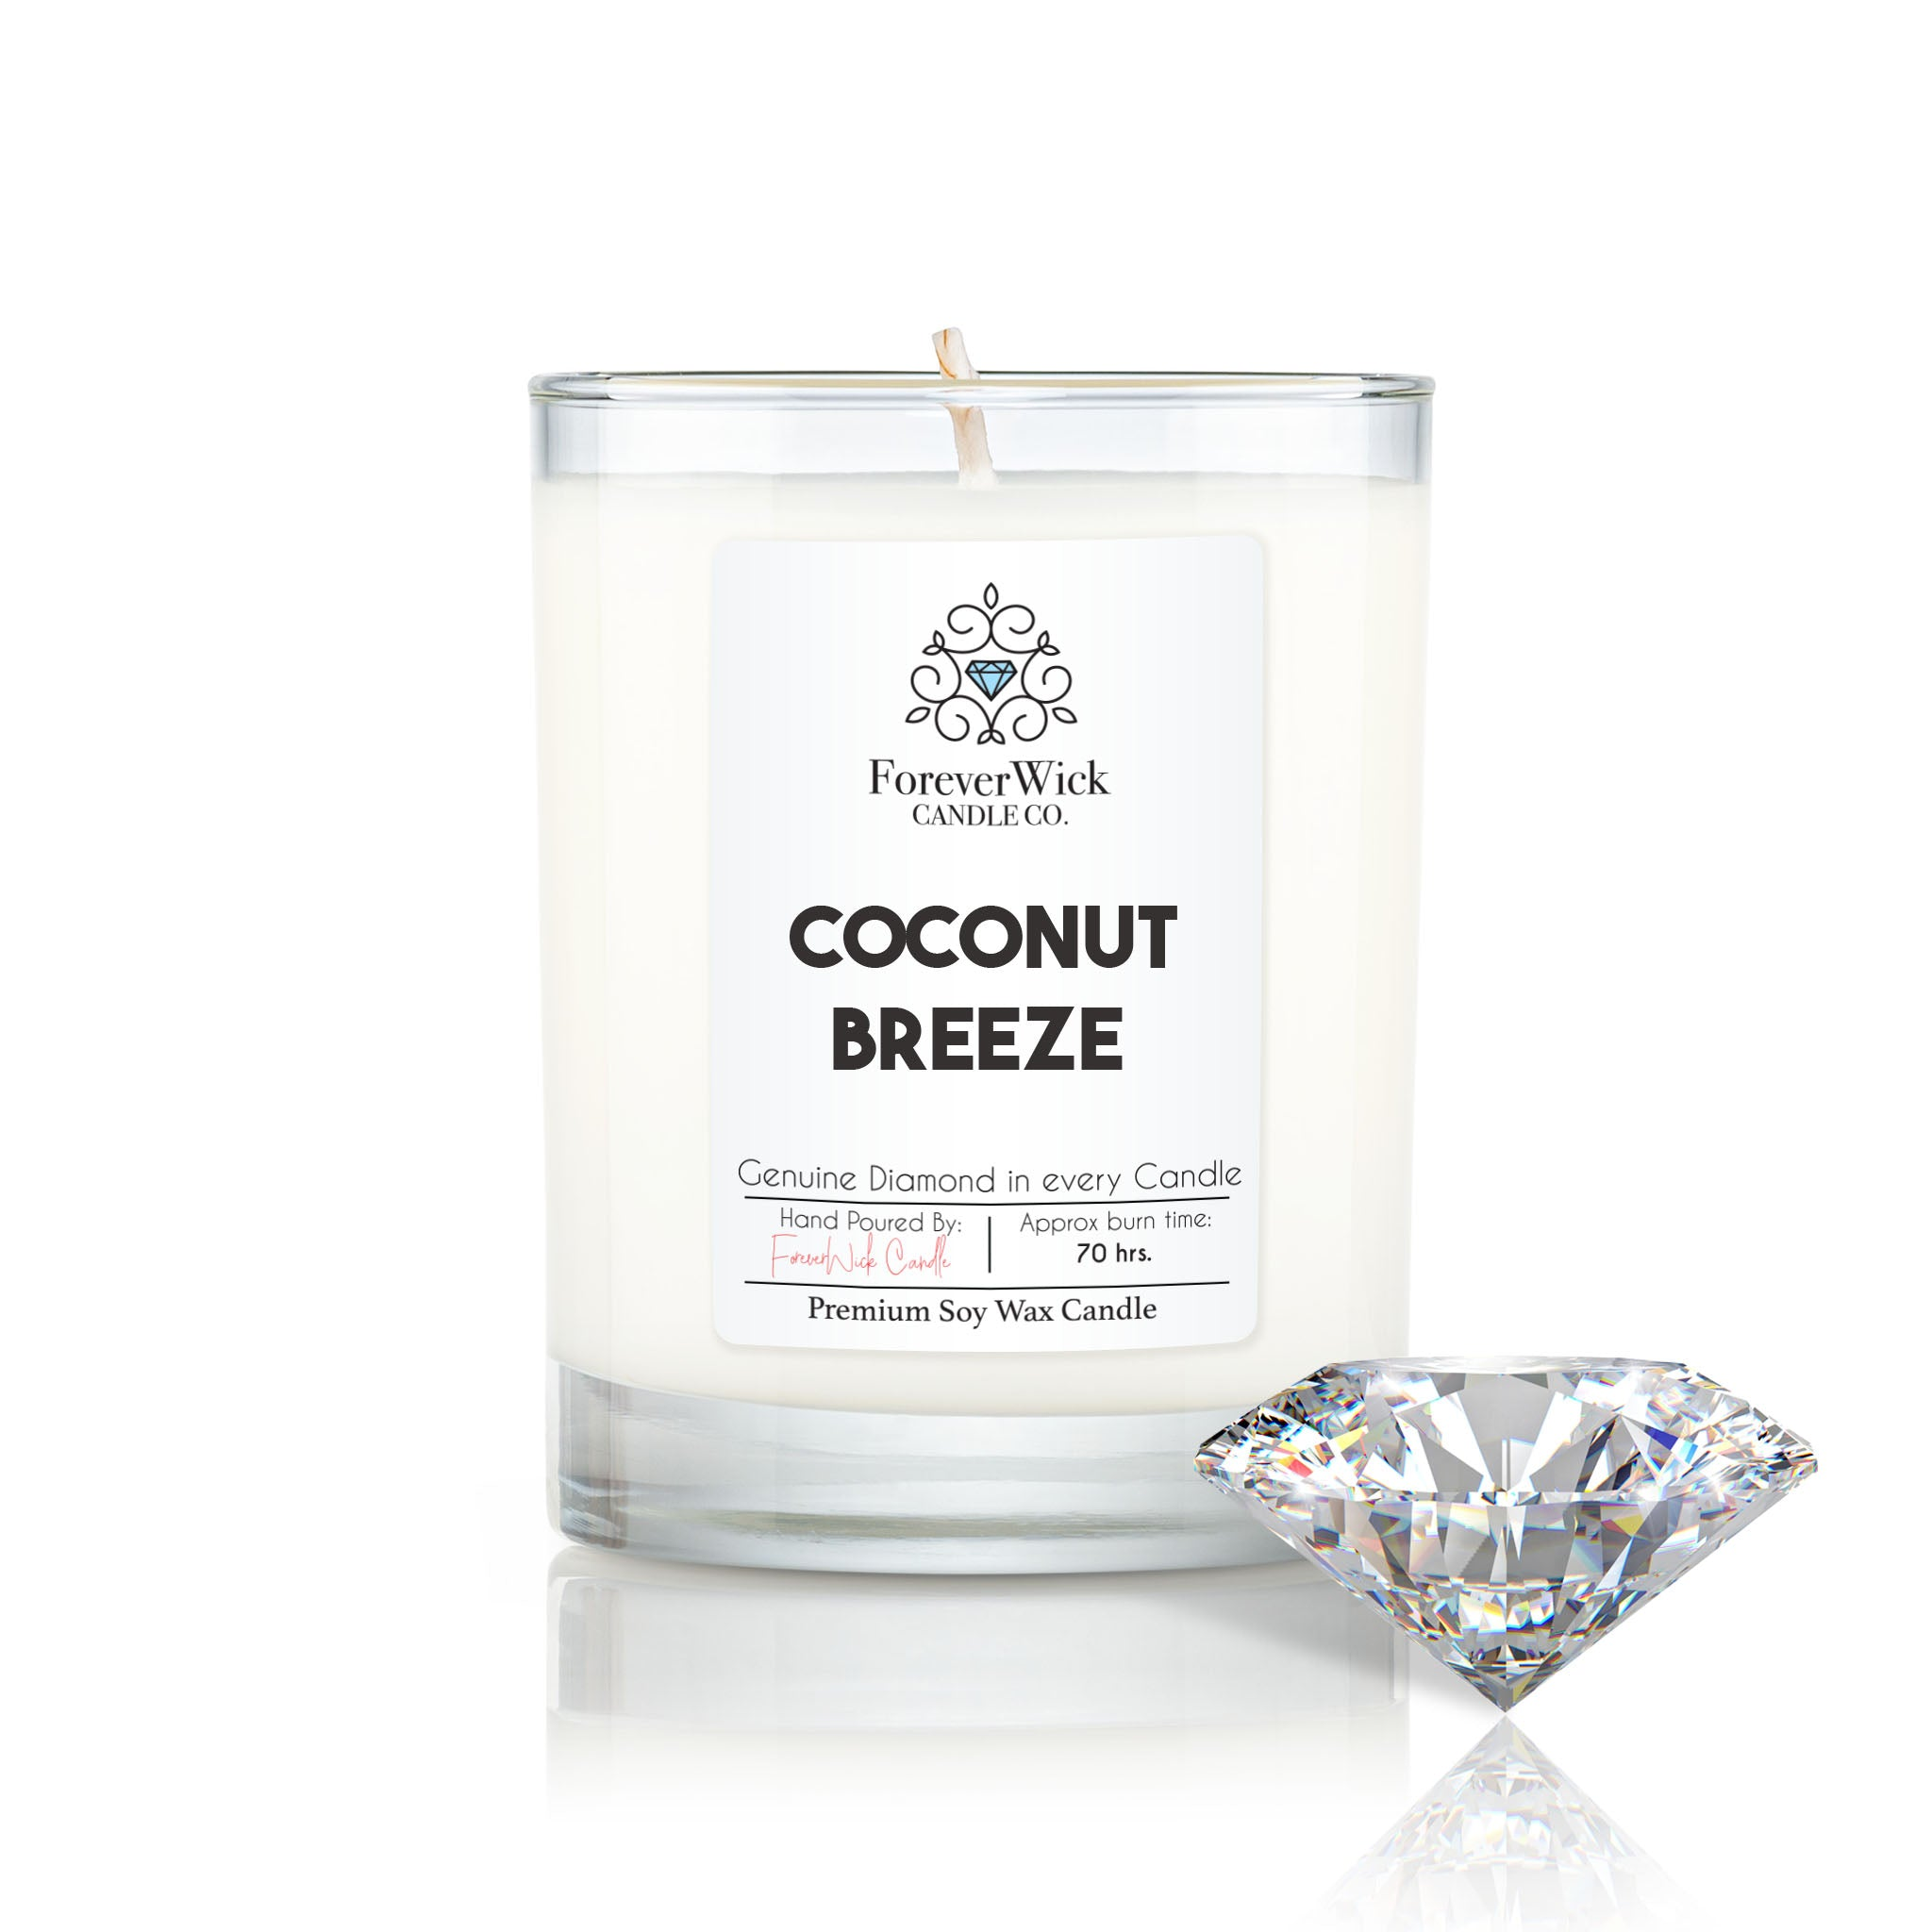 Coconut Breeze Diamond Candle